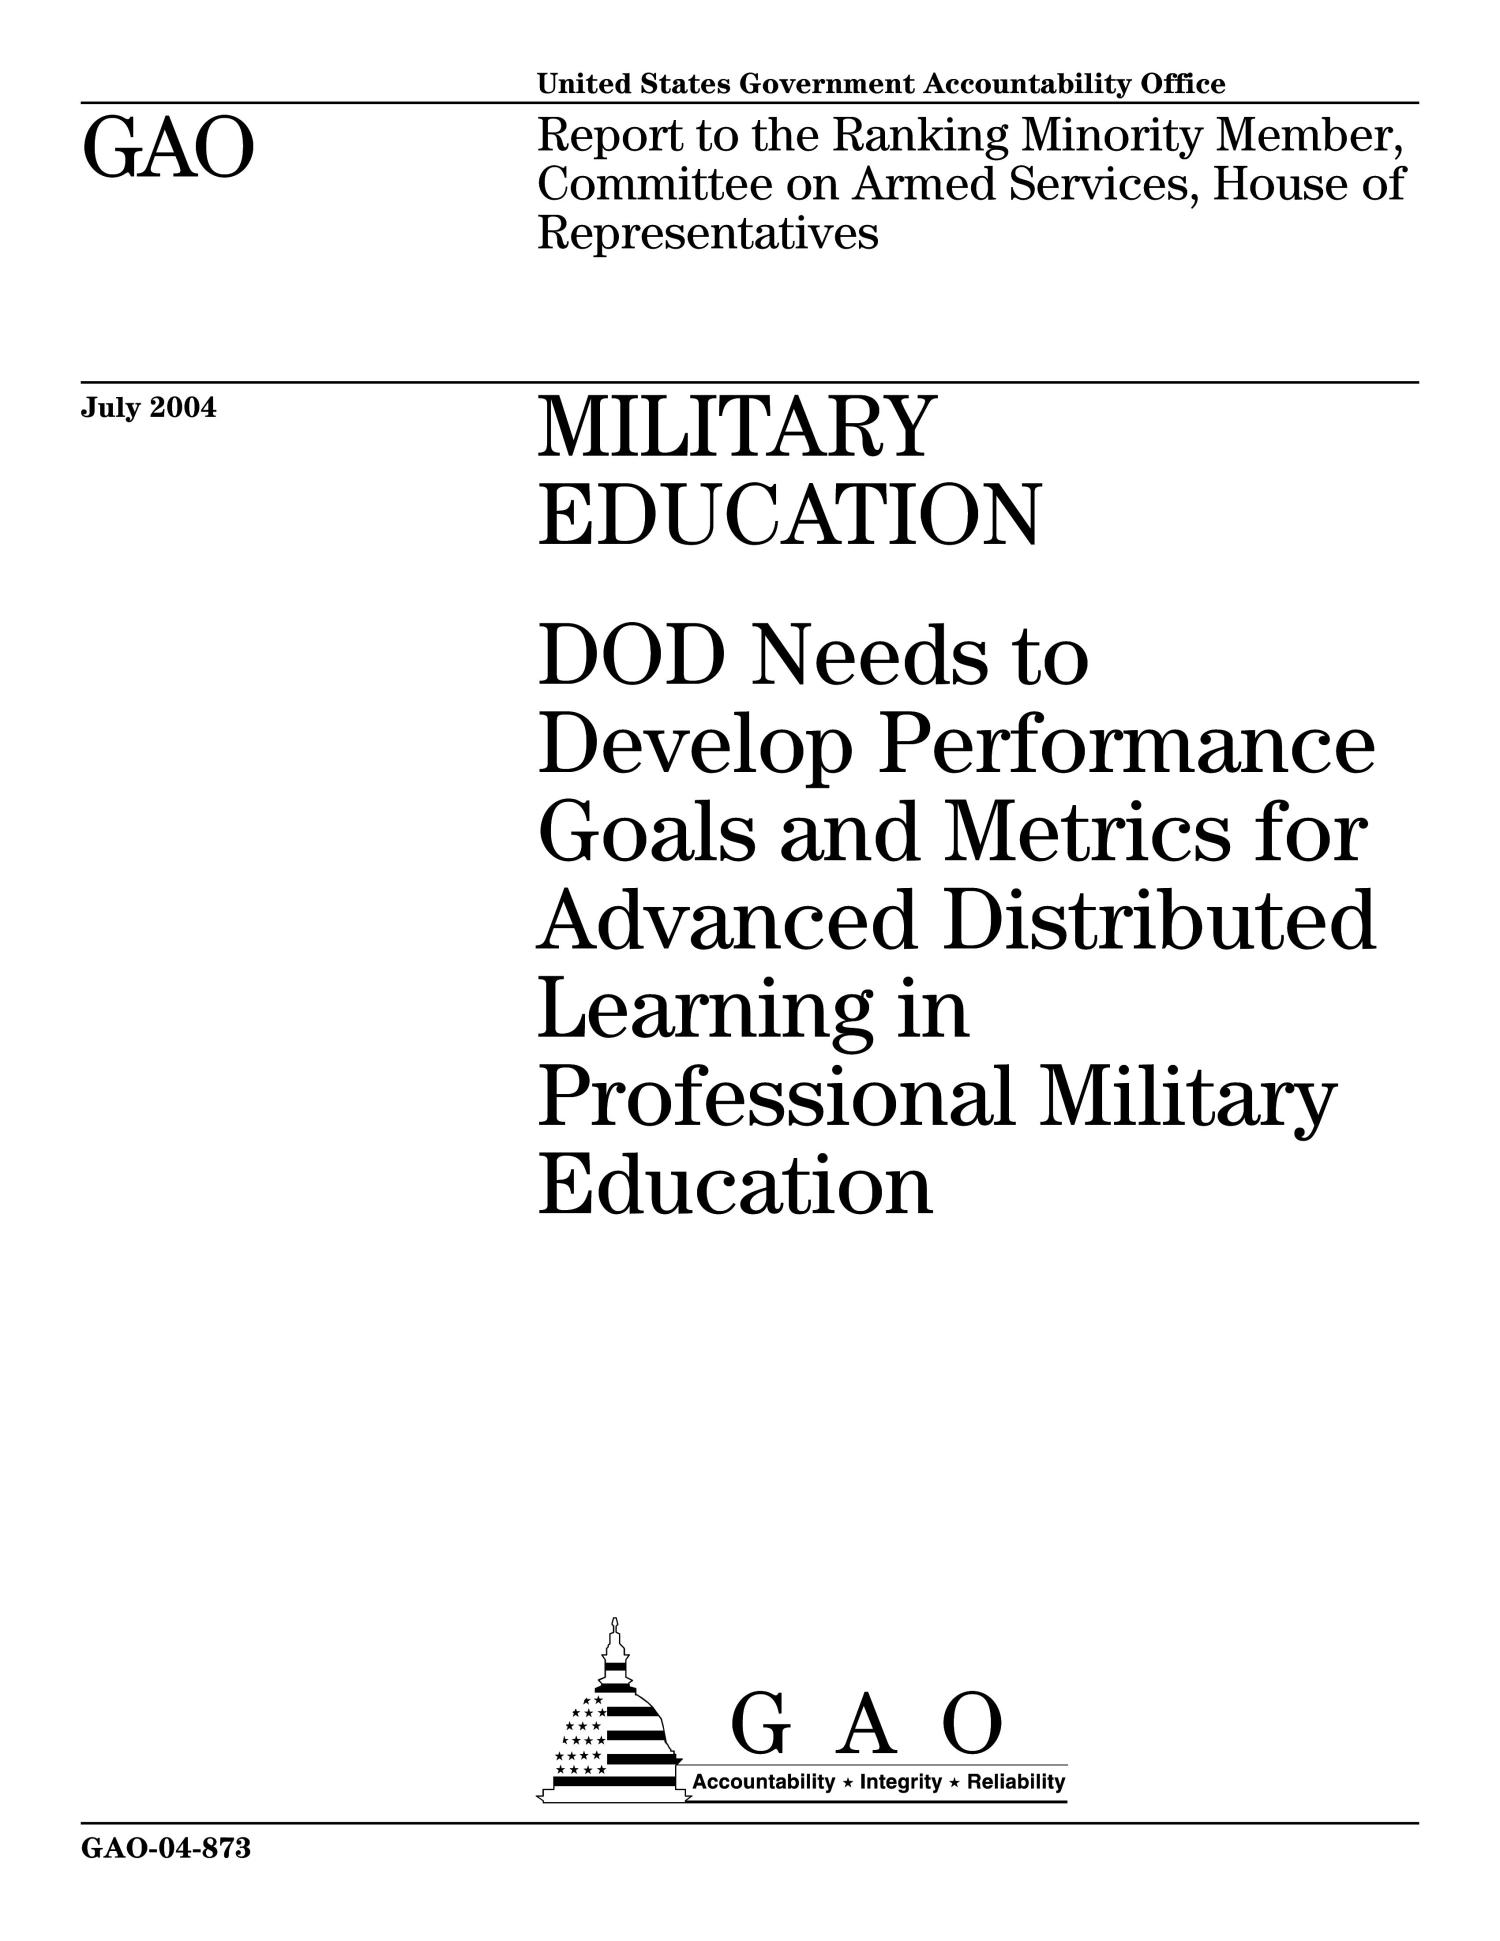 Military Education DOD Needs to Develop Performance Goals and